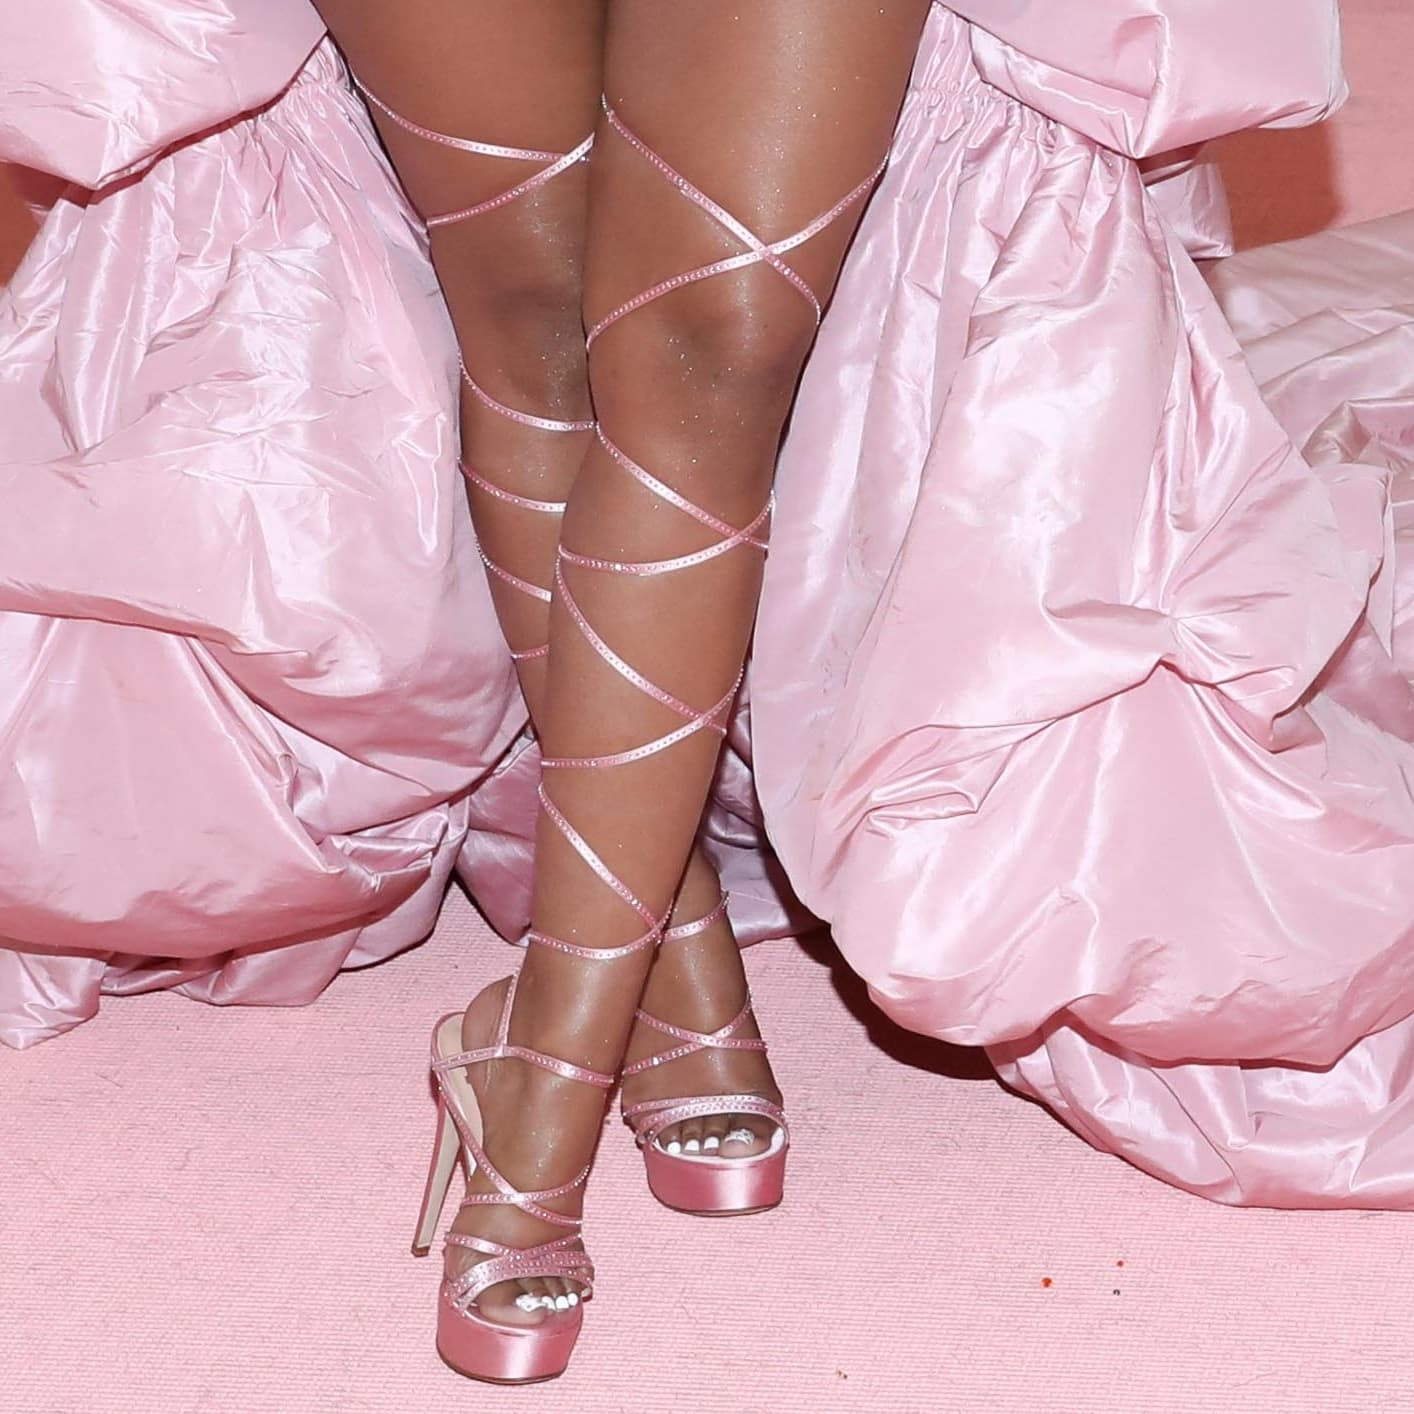 Nicki Minaj showed off her feet and legs in strappy sandals by Brother Vellies